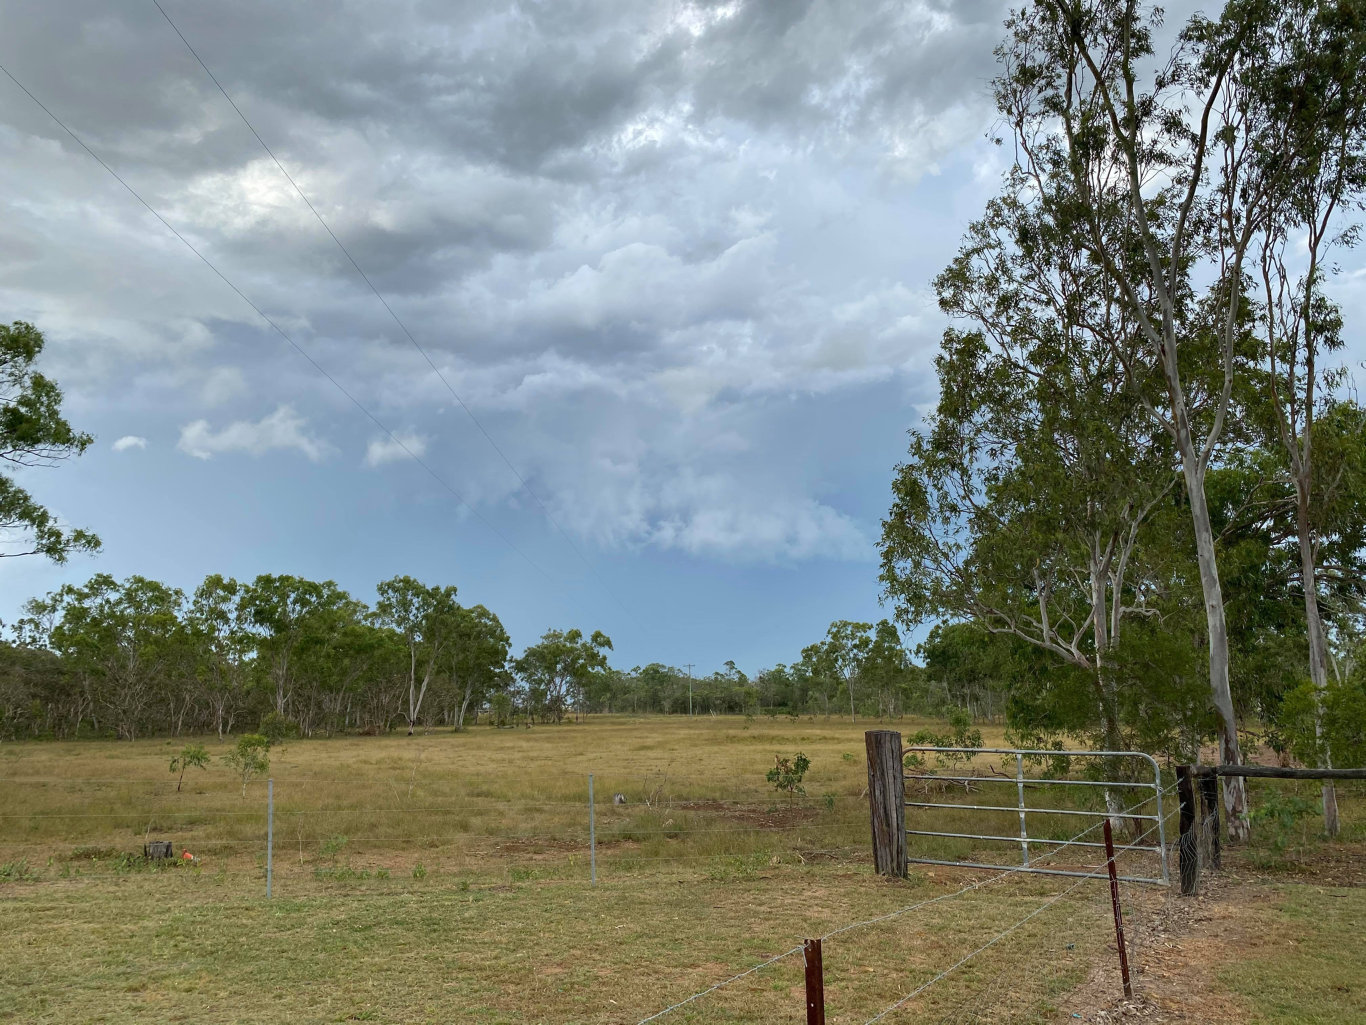 Bureau of Meteorology has issued a severe thunderstorm warning to residents as a storm moves into the Isaac region on Sunday April 19. St Lawrence resident Vivienne Coleman photographed the storm as it moved around her property.